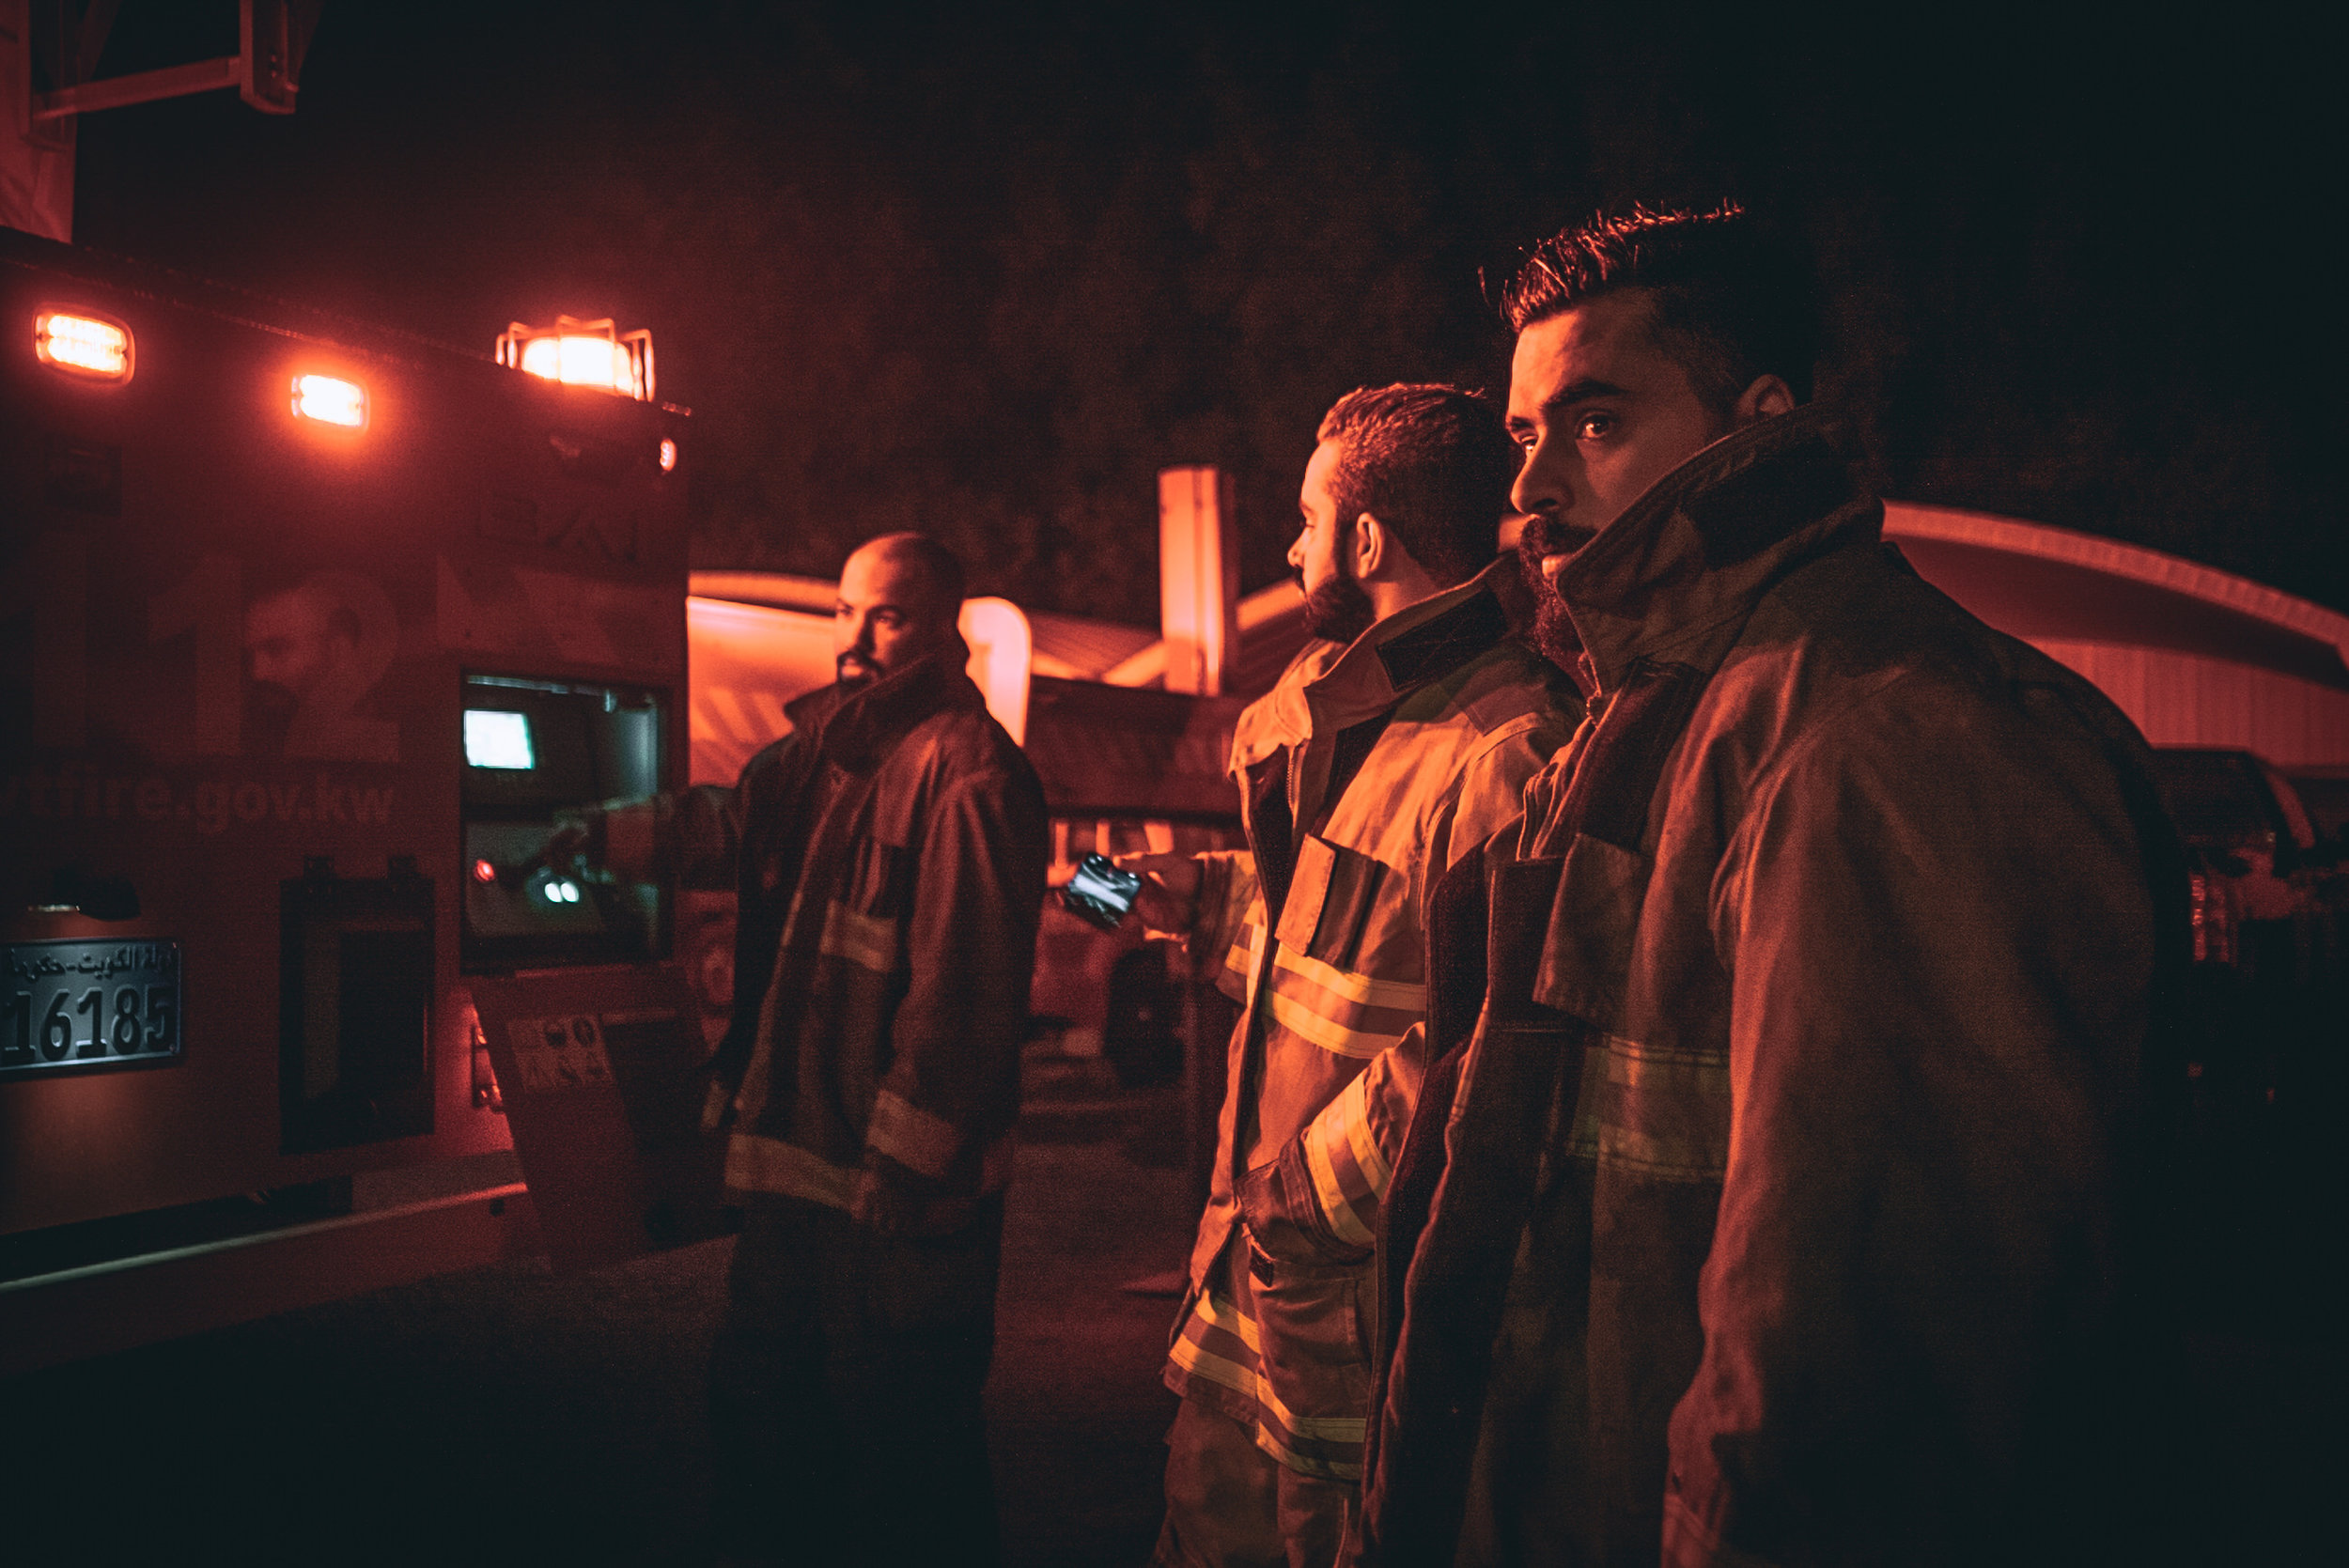 FIRST RESPONDERS -